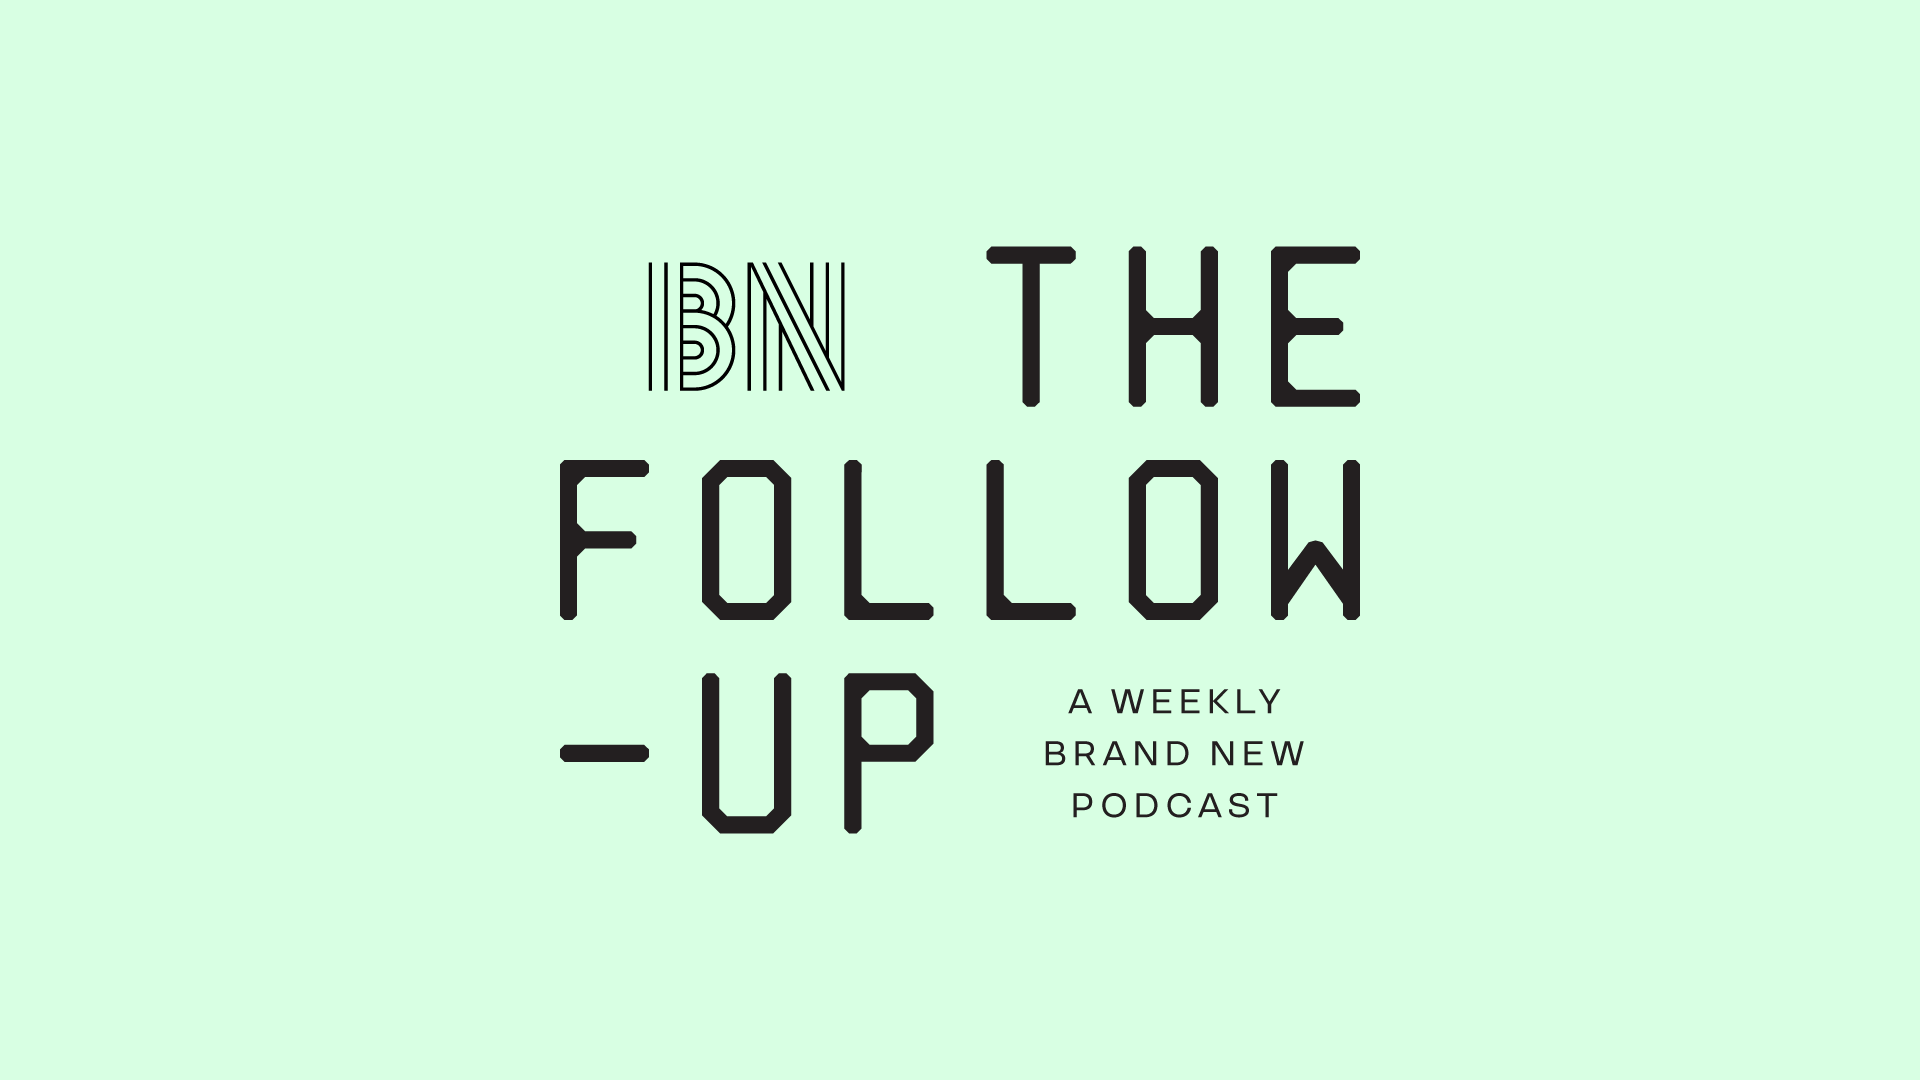 Introducing Brand New's weekly podcast!